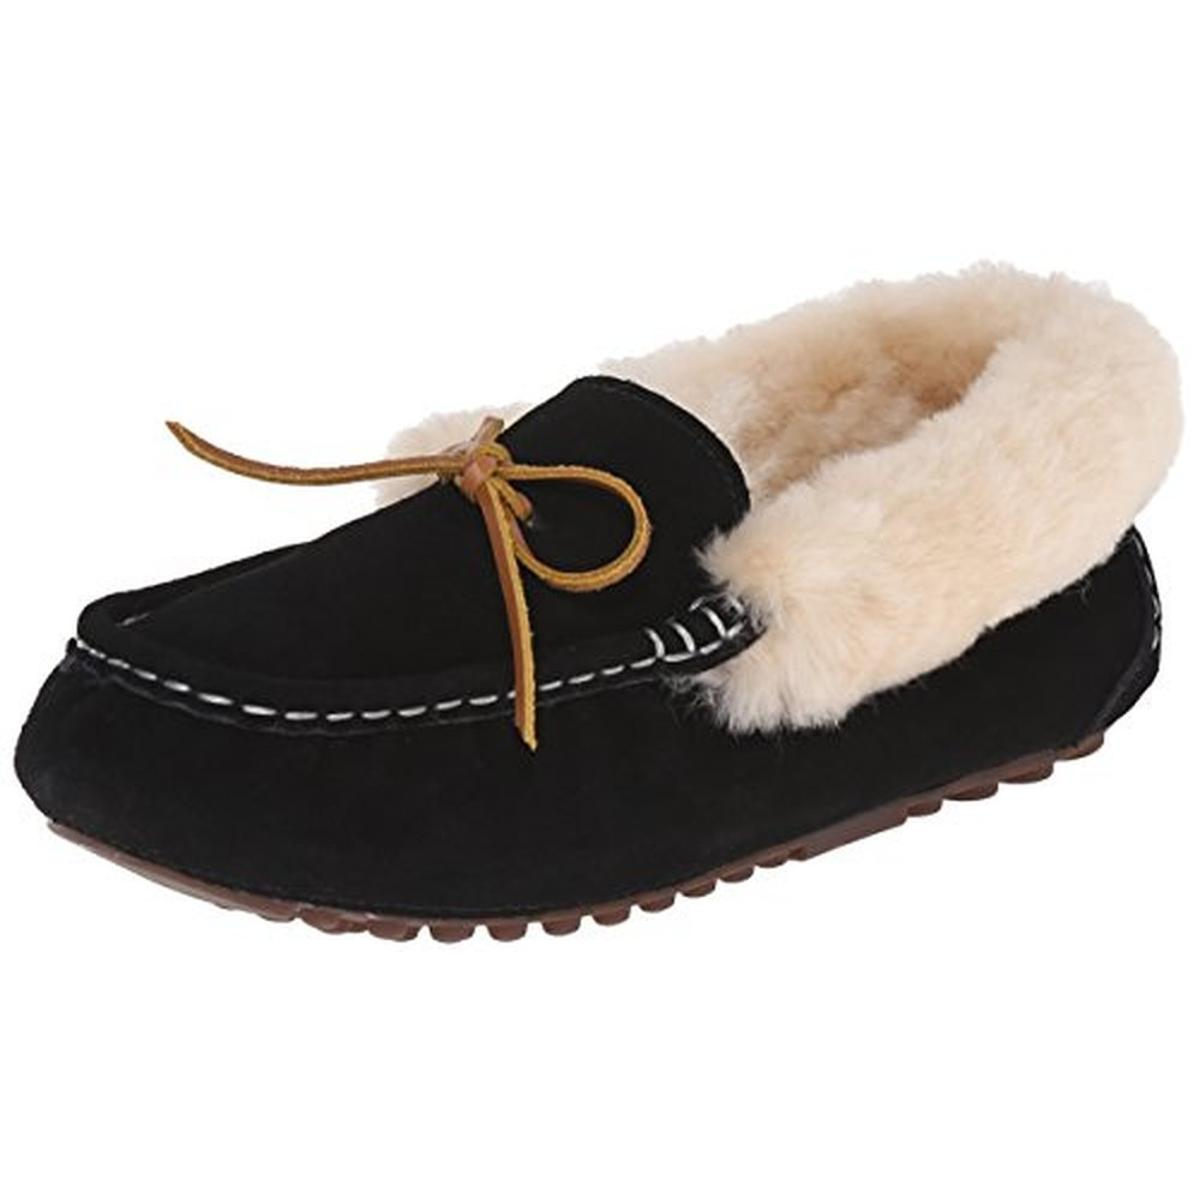 Mens Leather Bedroom Slippers Womens Fur Lined Slippers Ebay